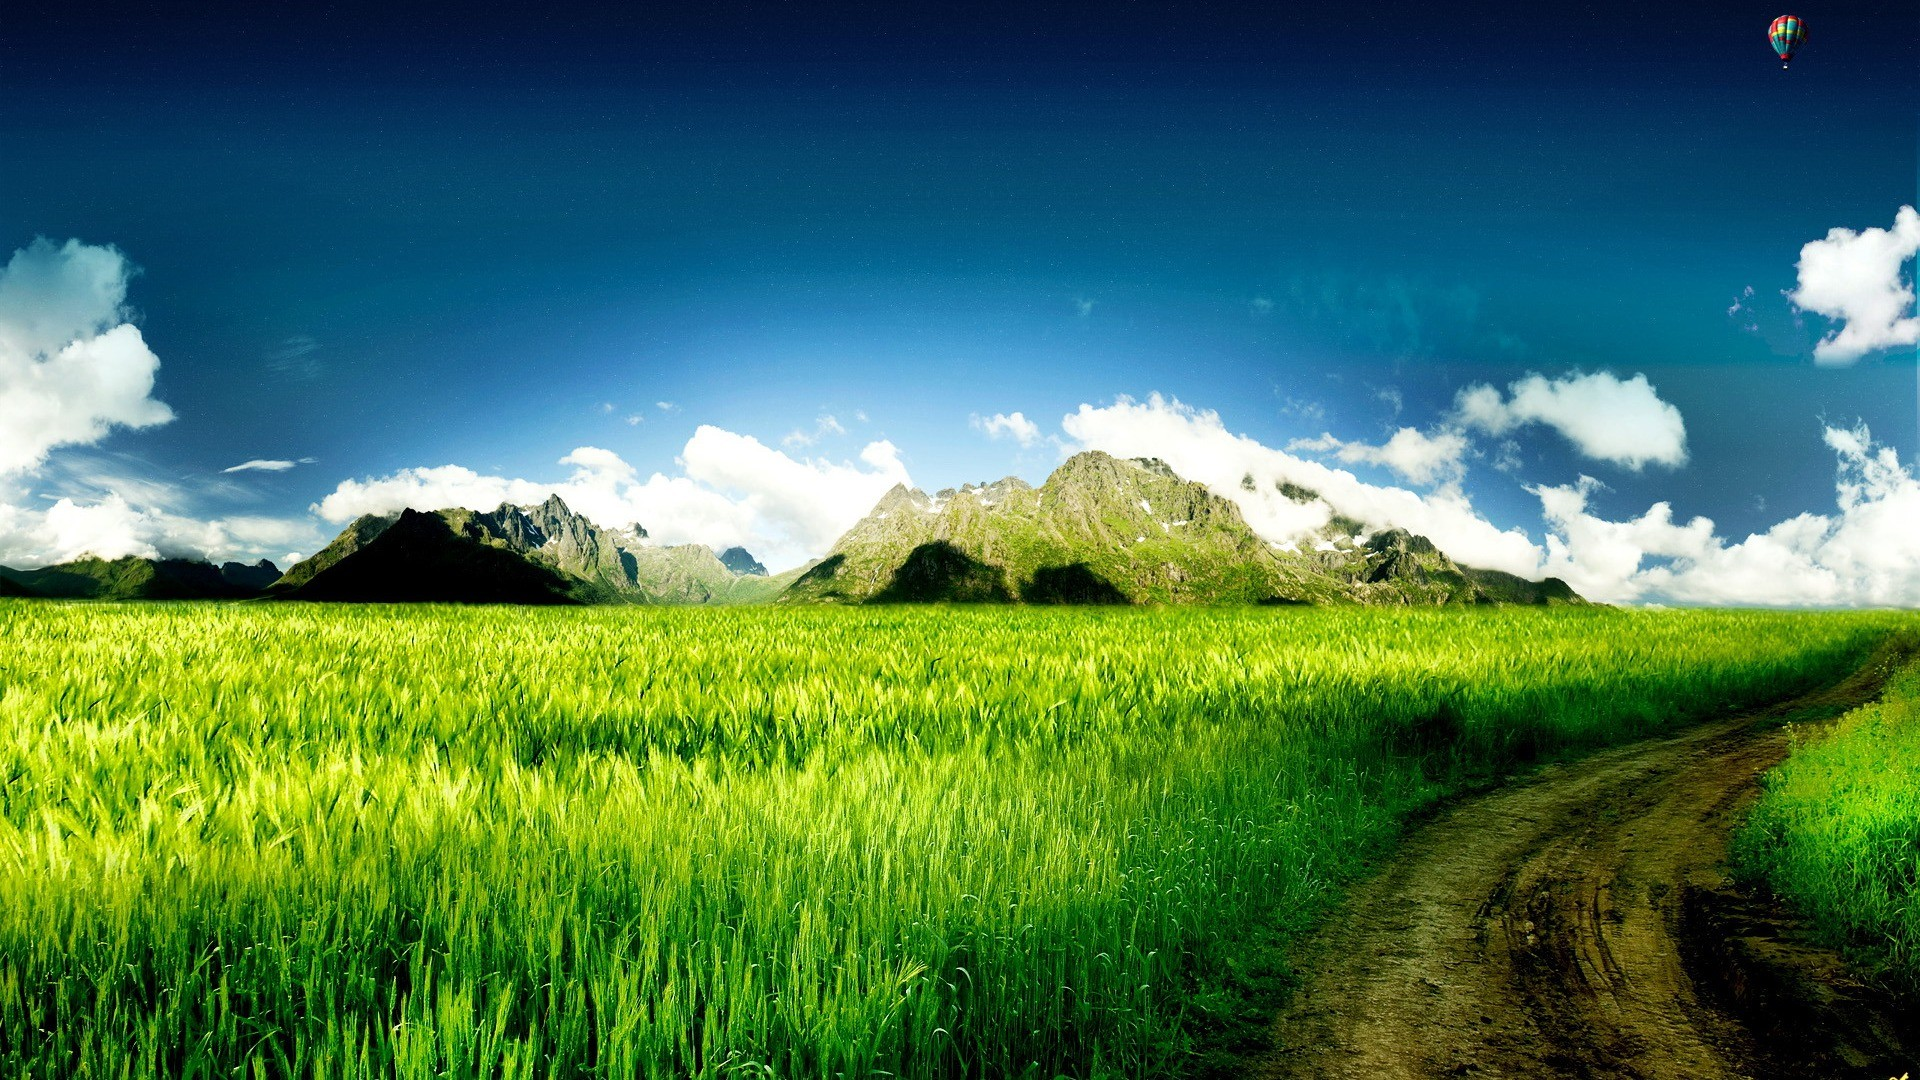 1920x1080 HD Widescreen Landscape Wallpapers #17 - .